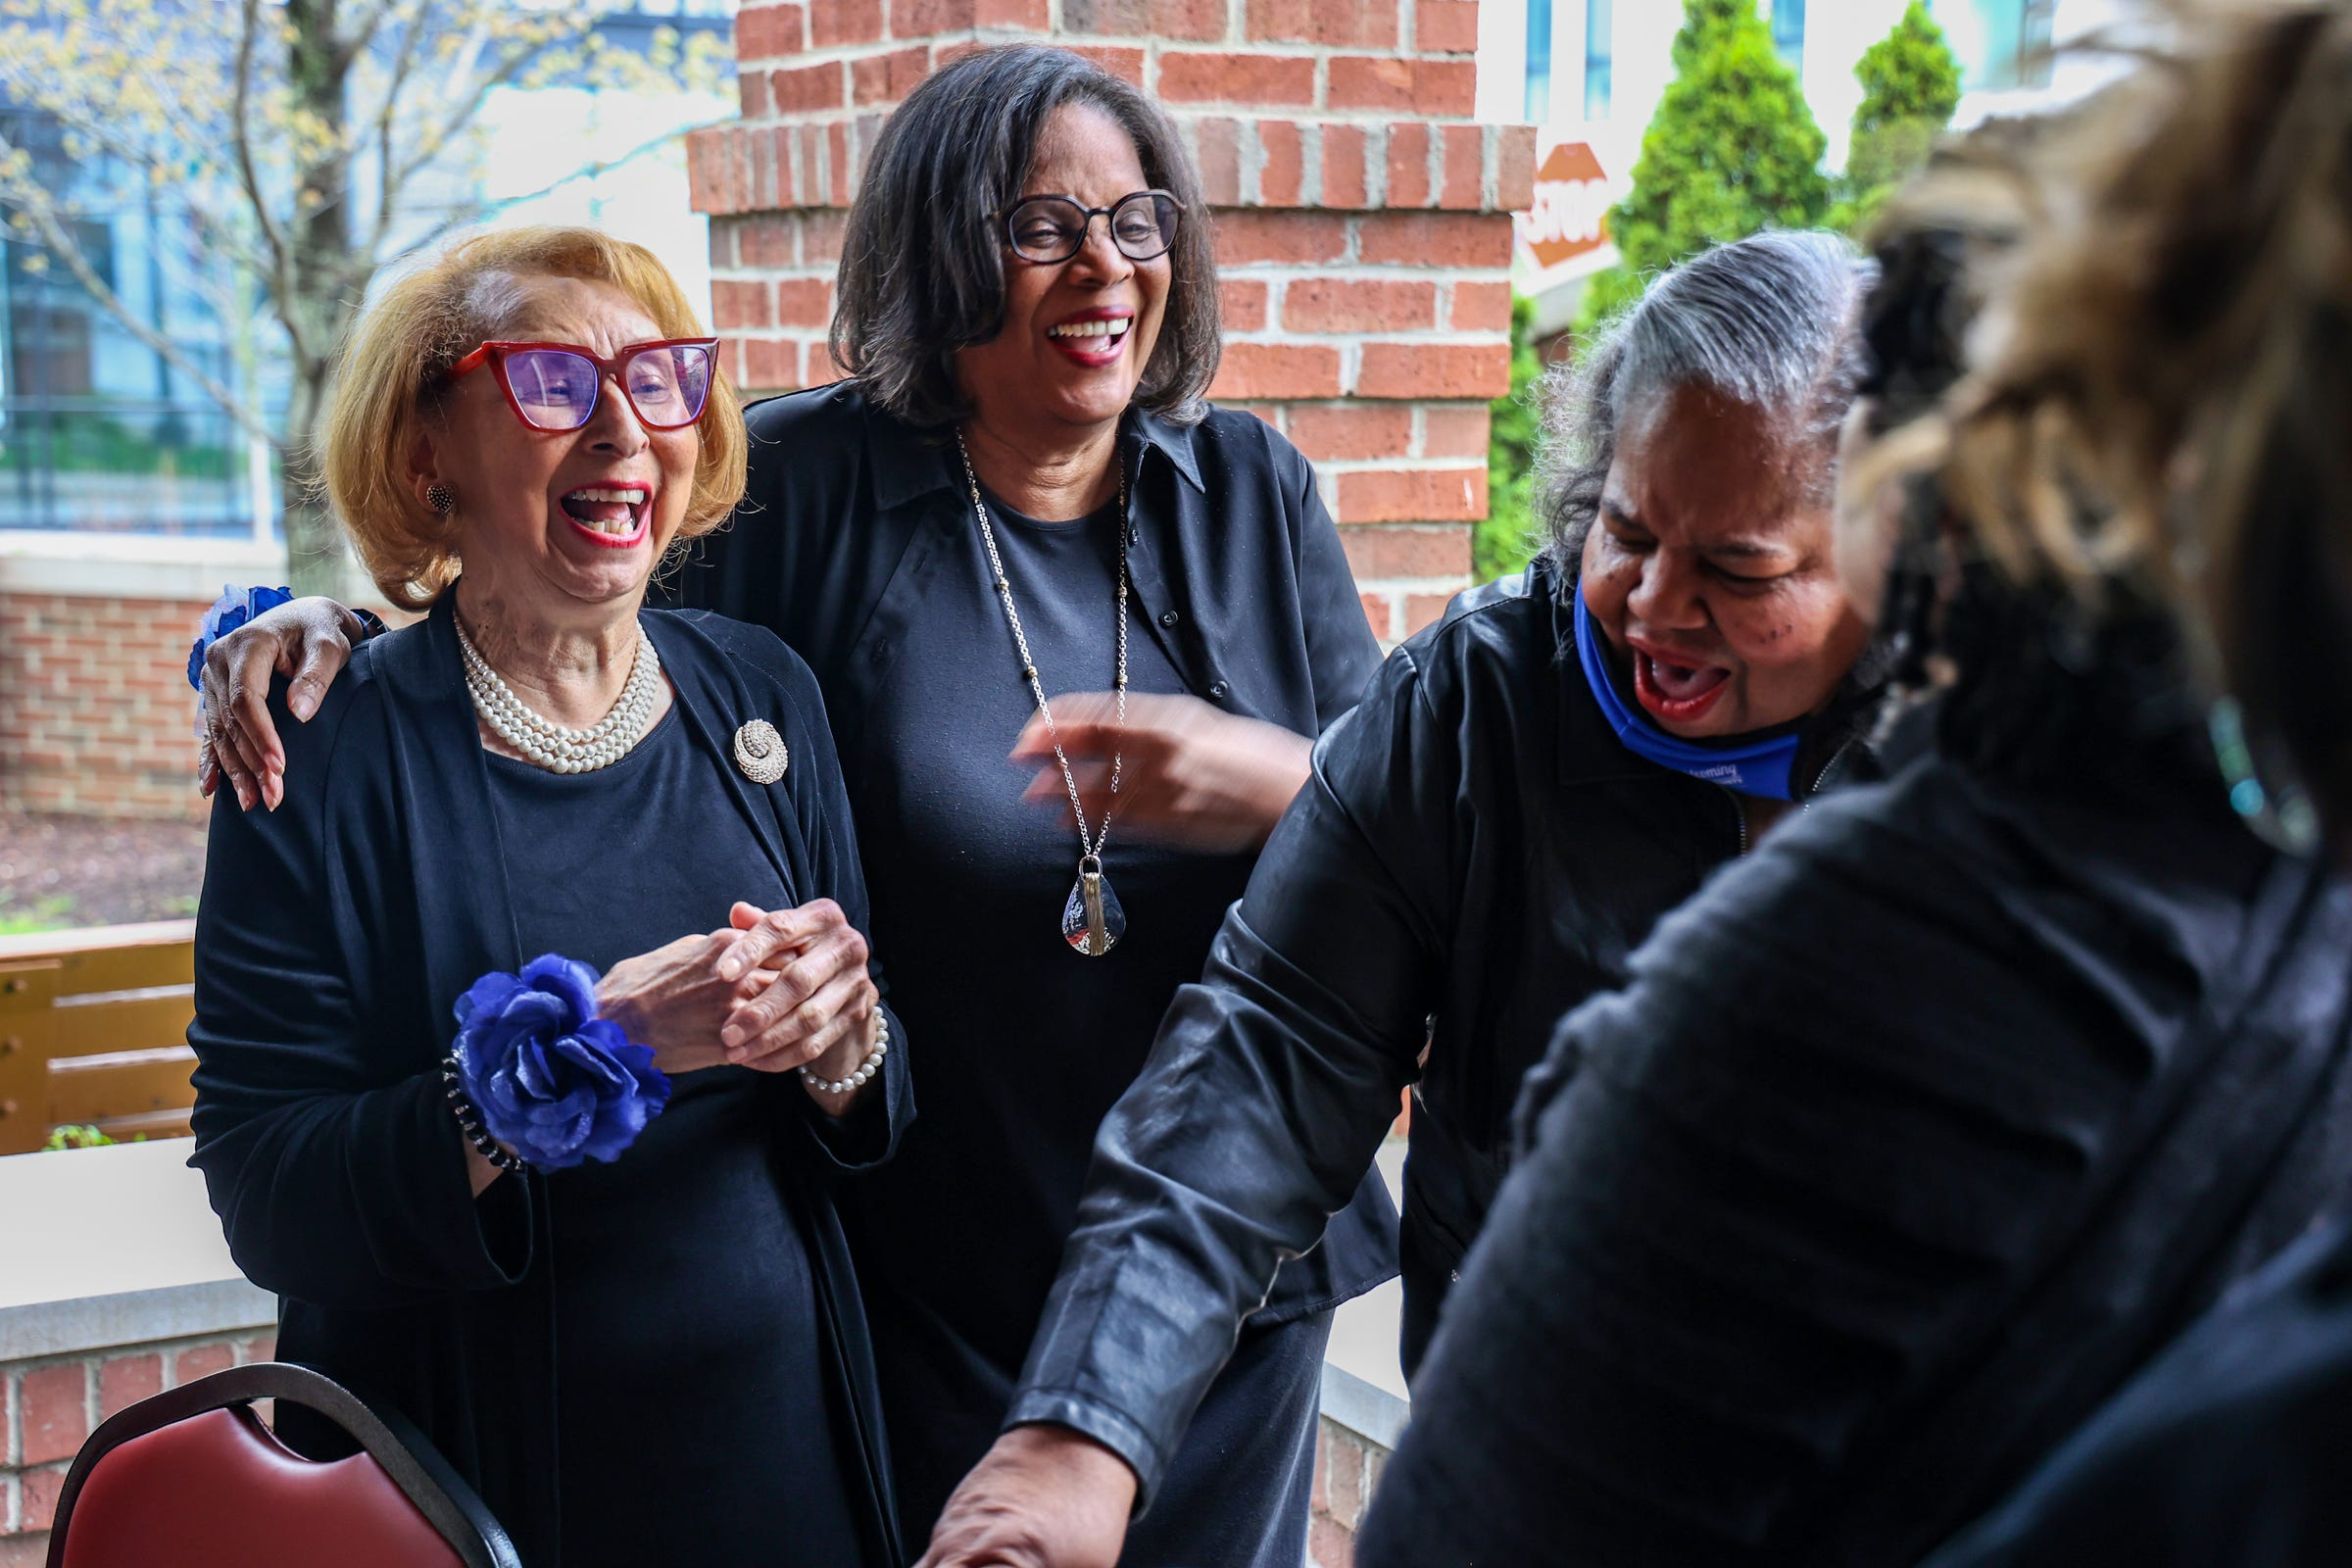 Elliottorian Business and Professional Women's Club President Jennifer Poole laughs with Scholarship co-chair Doreen Dudley after posing for a group photo at the Village of Brush Park Manor Paradise Valley in Detroit on April 29, 2021.  The Elliottorian Business and Professional Women's Club is the first club of Black business women in Detroit and Michigan and was founded in 1928.